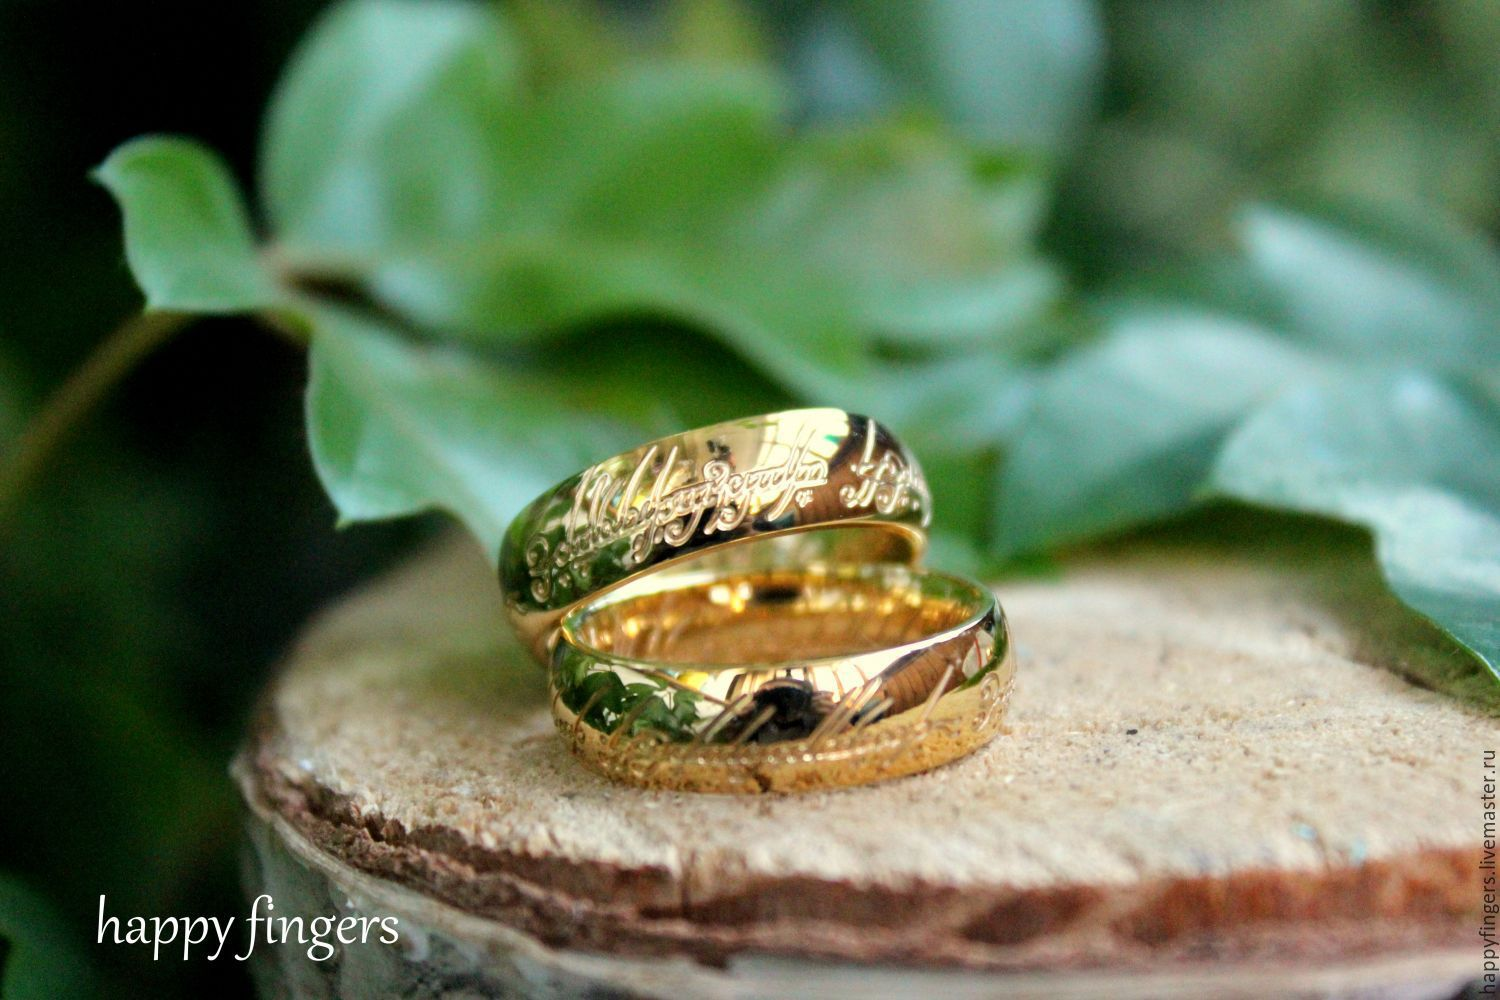 The one ring, the ring of power. Lord of the rings, the hobbit ...